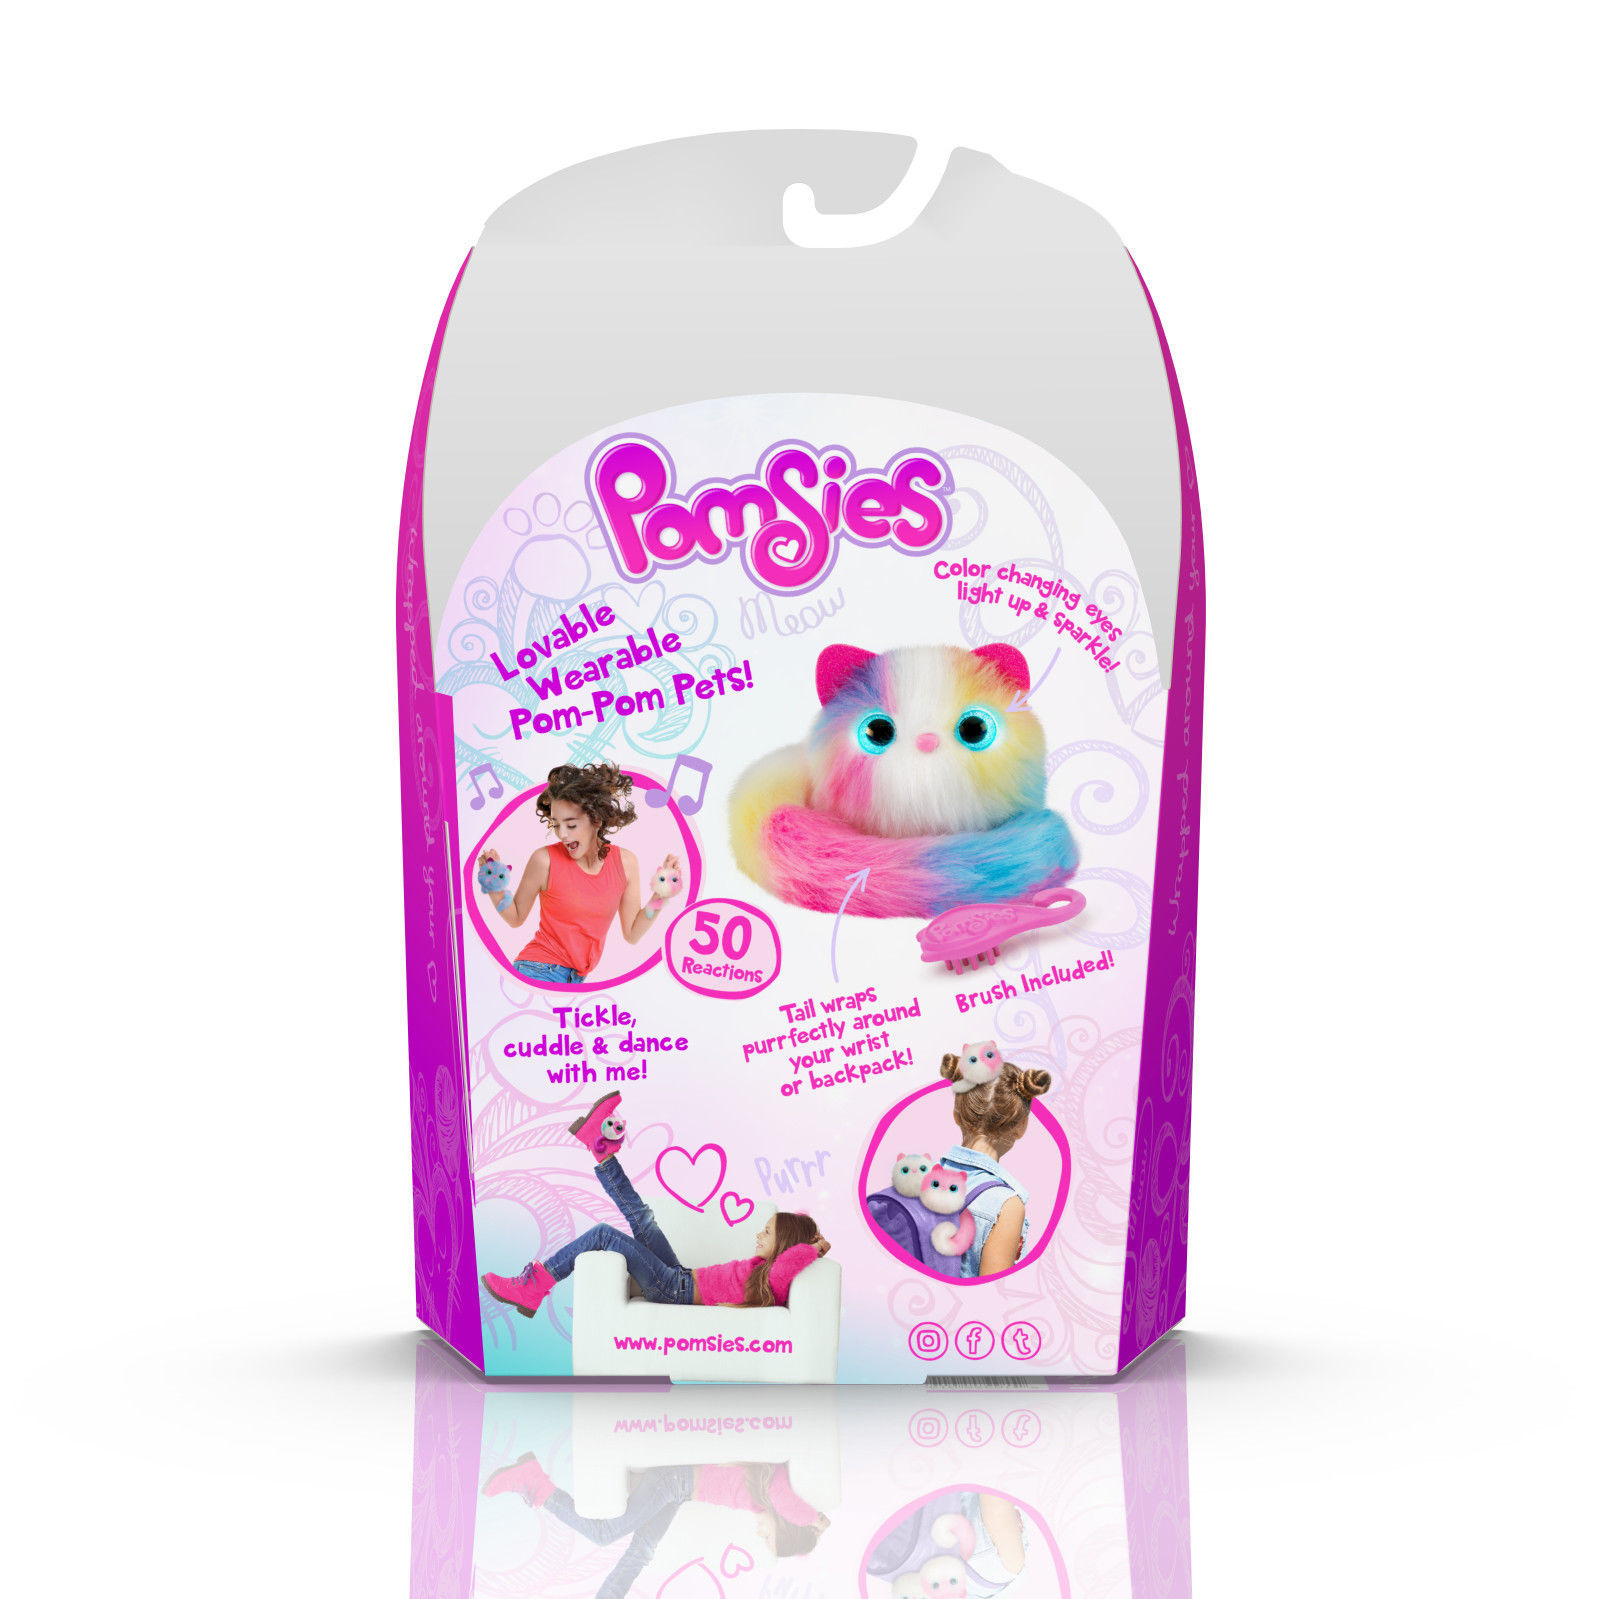 Pomsies Pet Sherbert Exclusive limited Edition